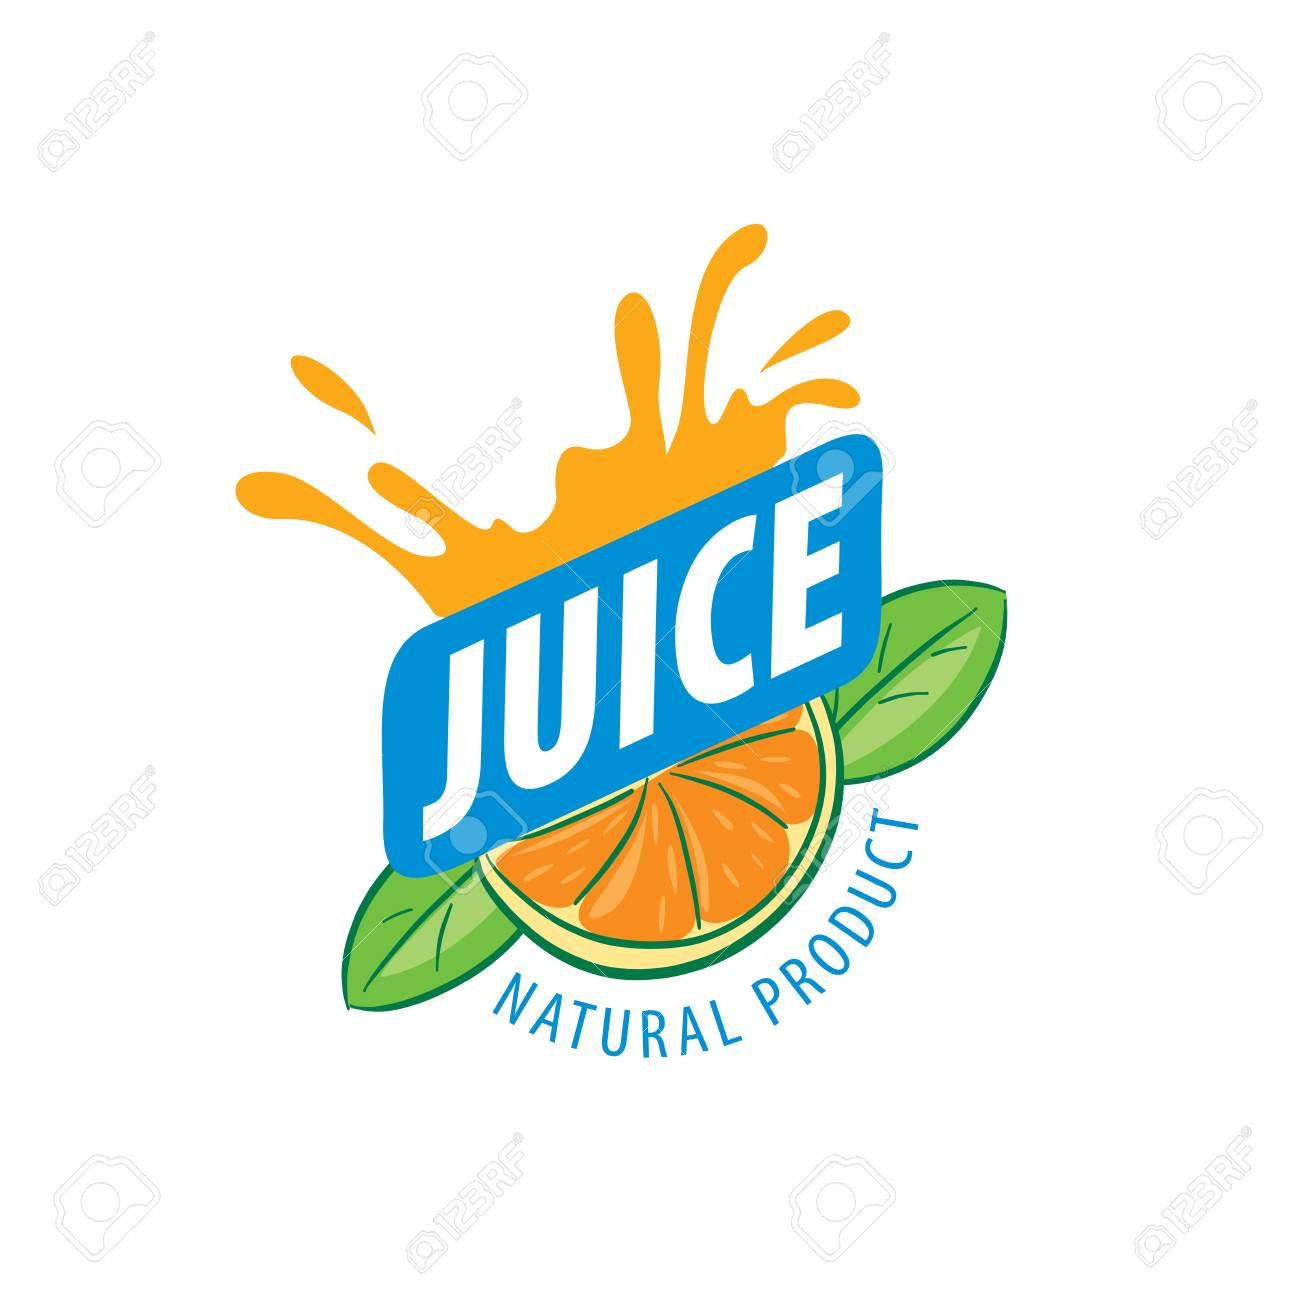 logo design template juice vector illustration of icon royalty free cliparts vectors and stock illustration image 67425619 123rf com